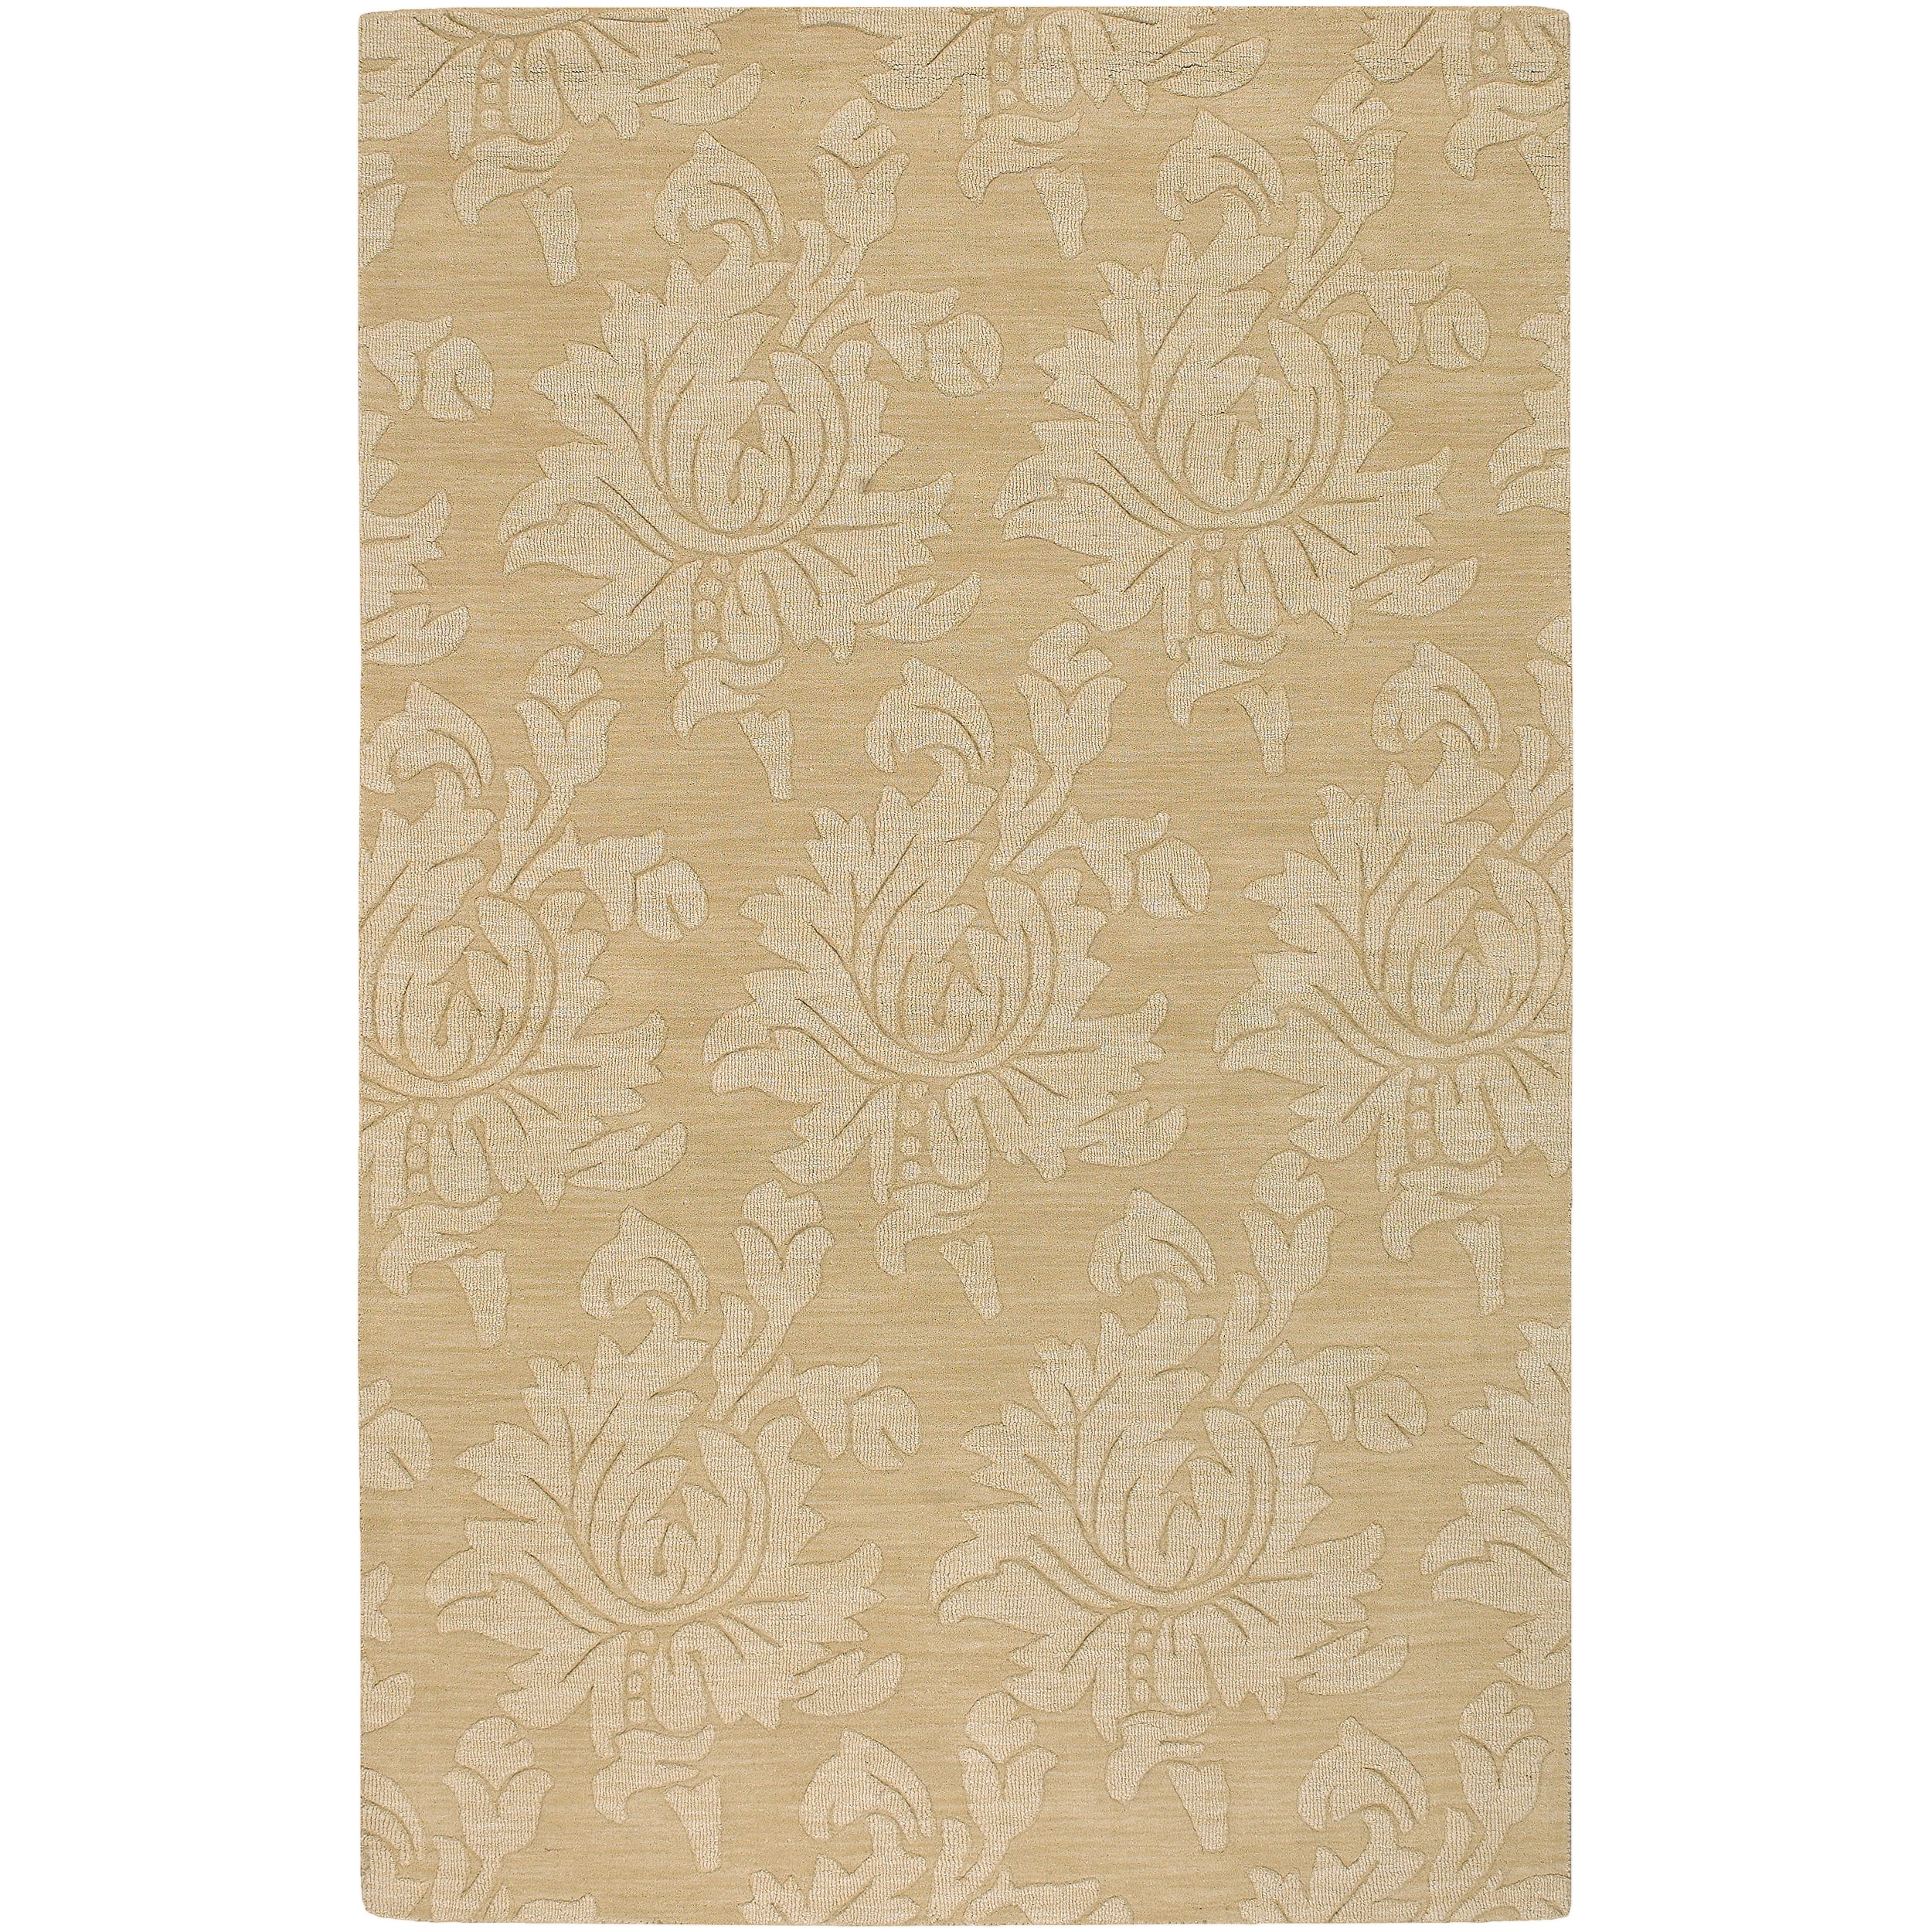 Hand-crafted Solid Beige Damask Contrel Wool Area Rug - 8' x 11'